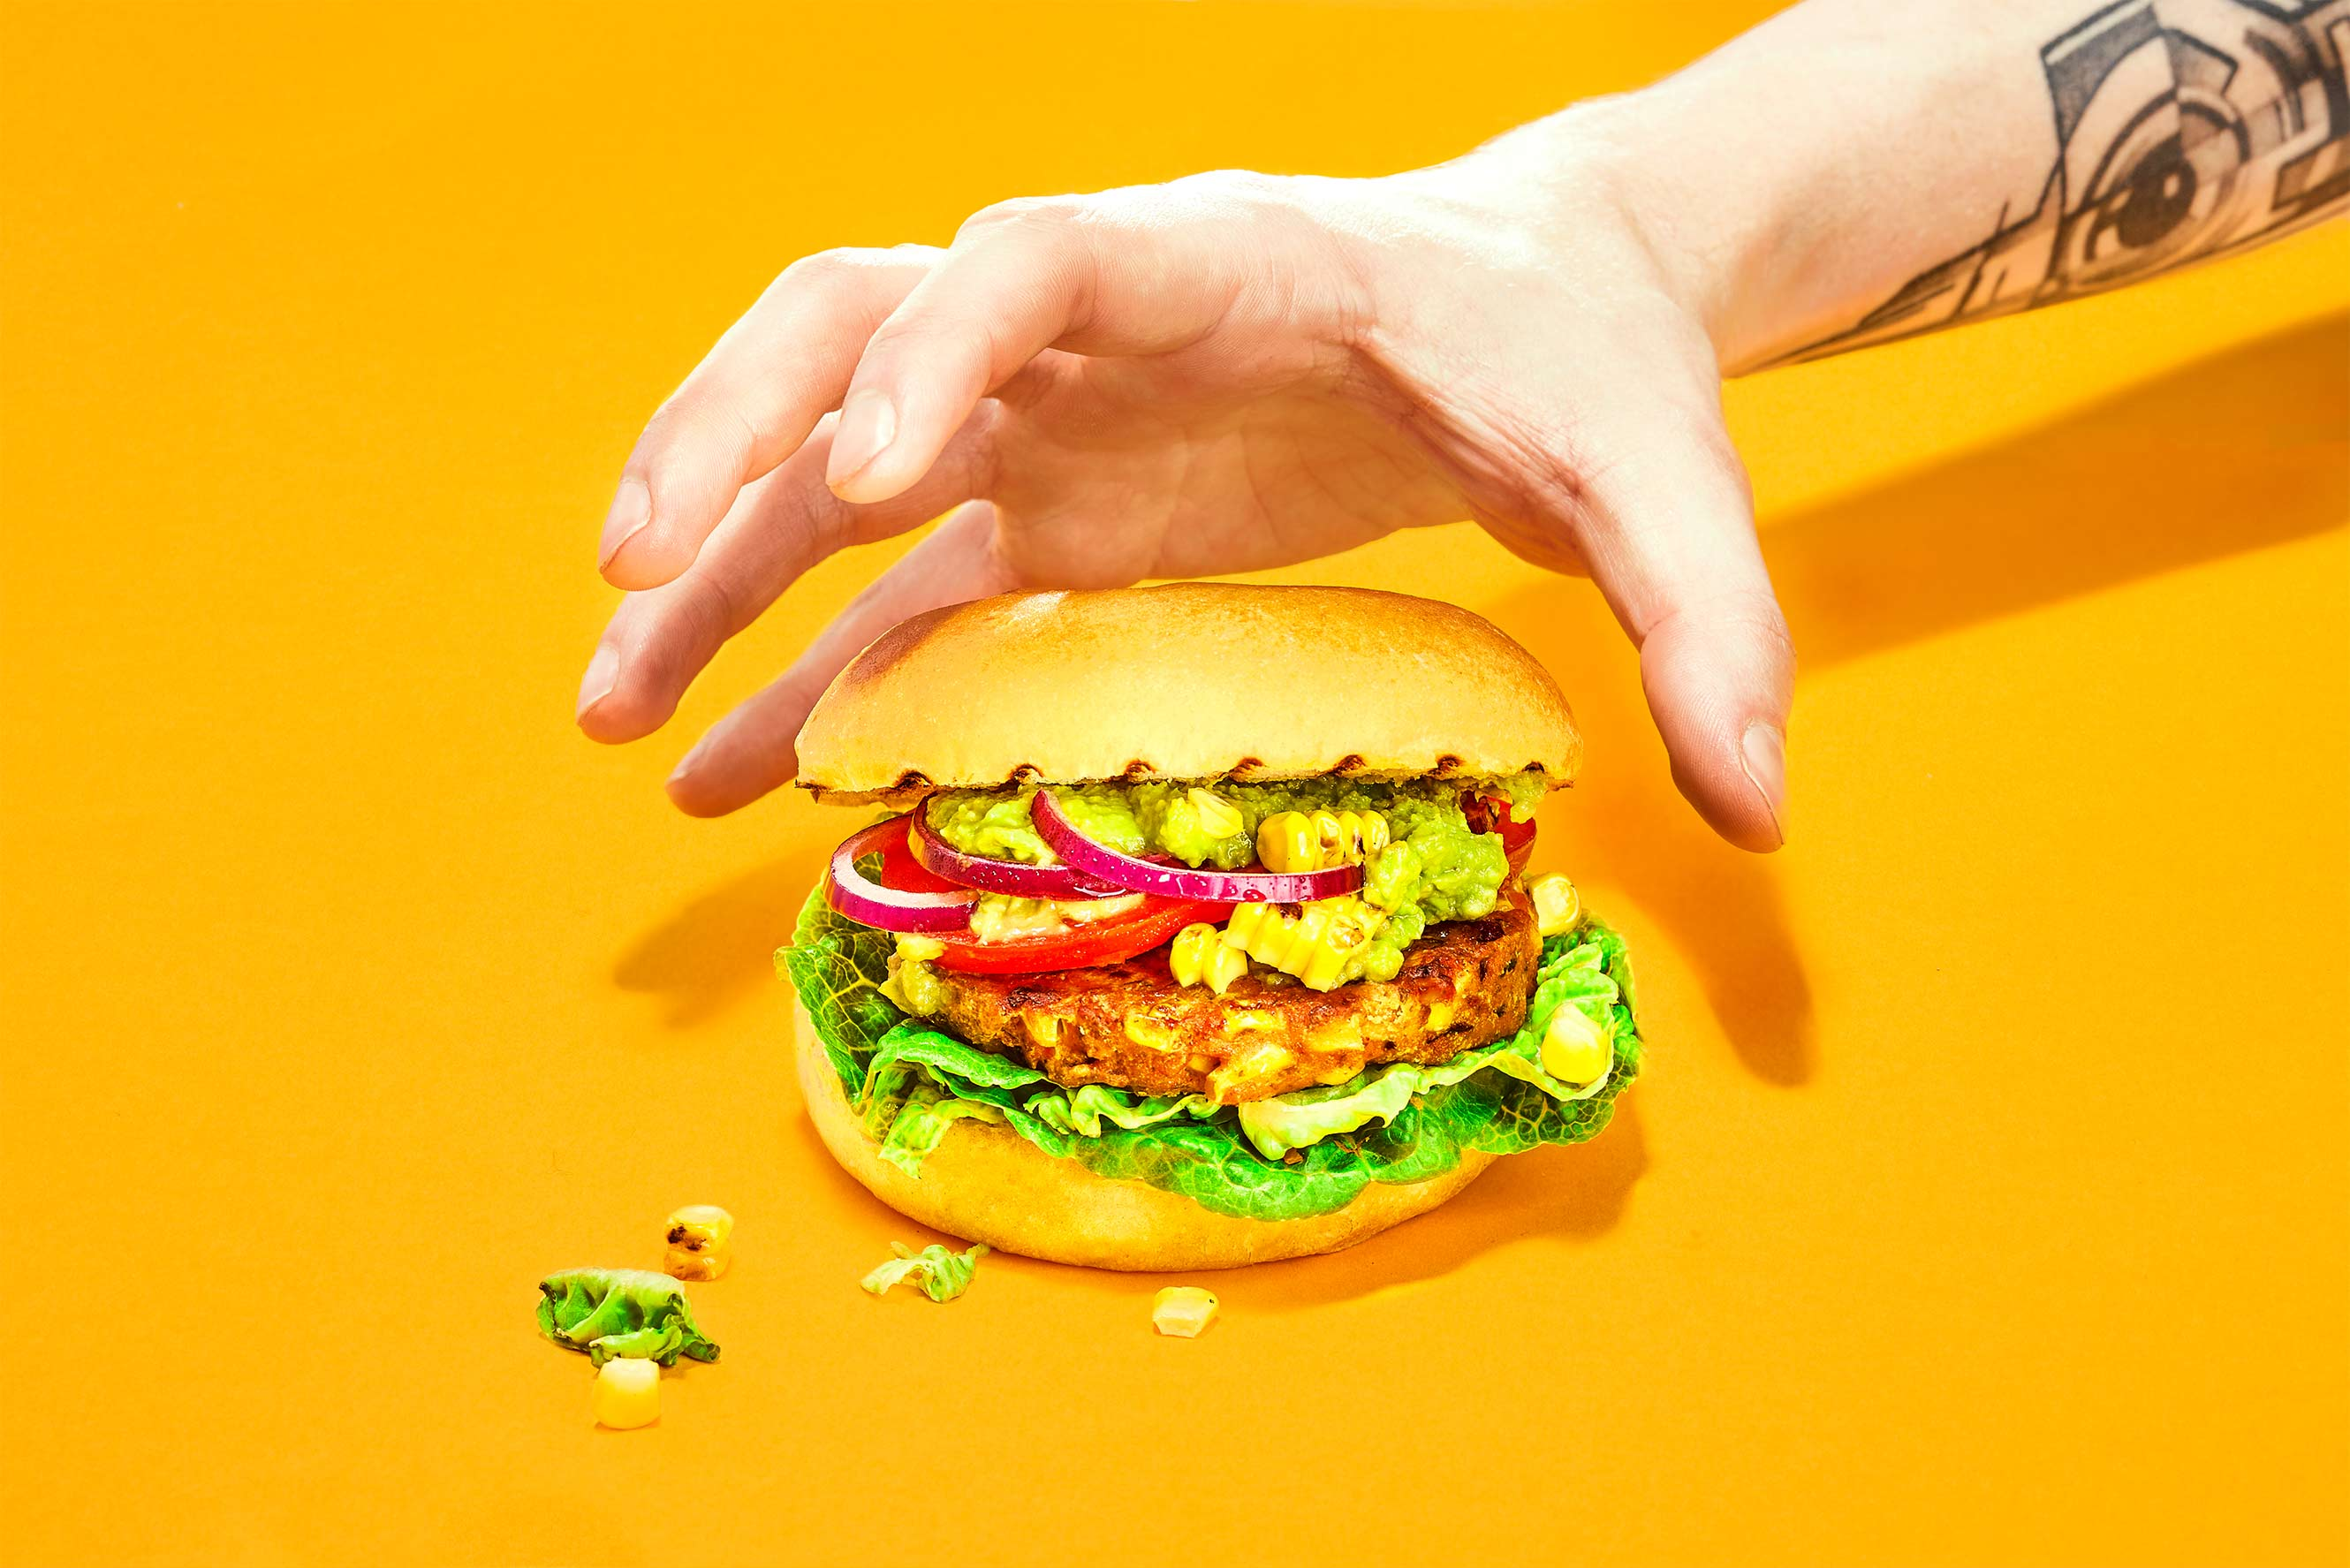 Tattooed man's arm grabbing a tex mex burger with a patty made of buffalo worms Food commercial photography artificial light Philipp Burkart photographer in Hamburg Chewow